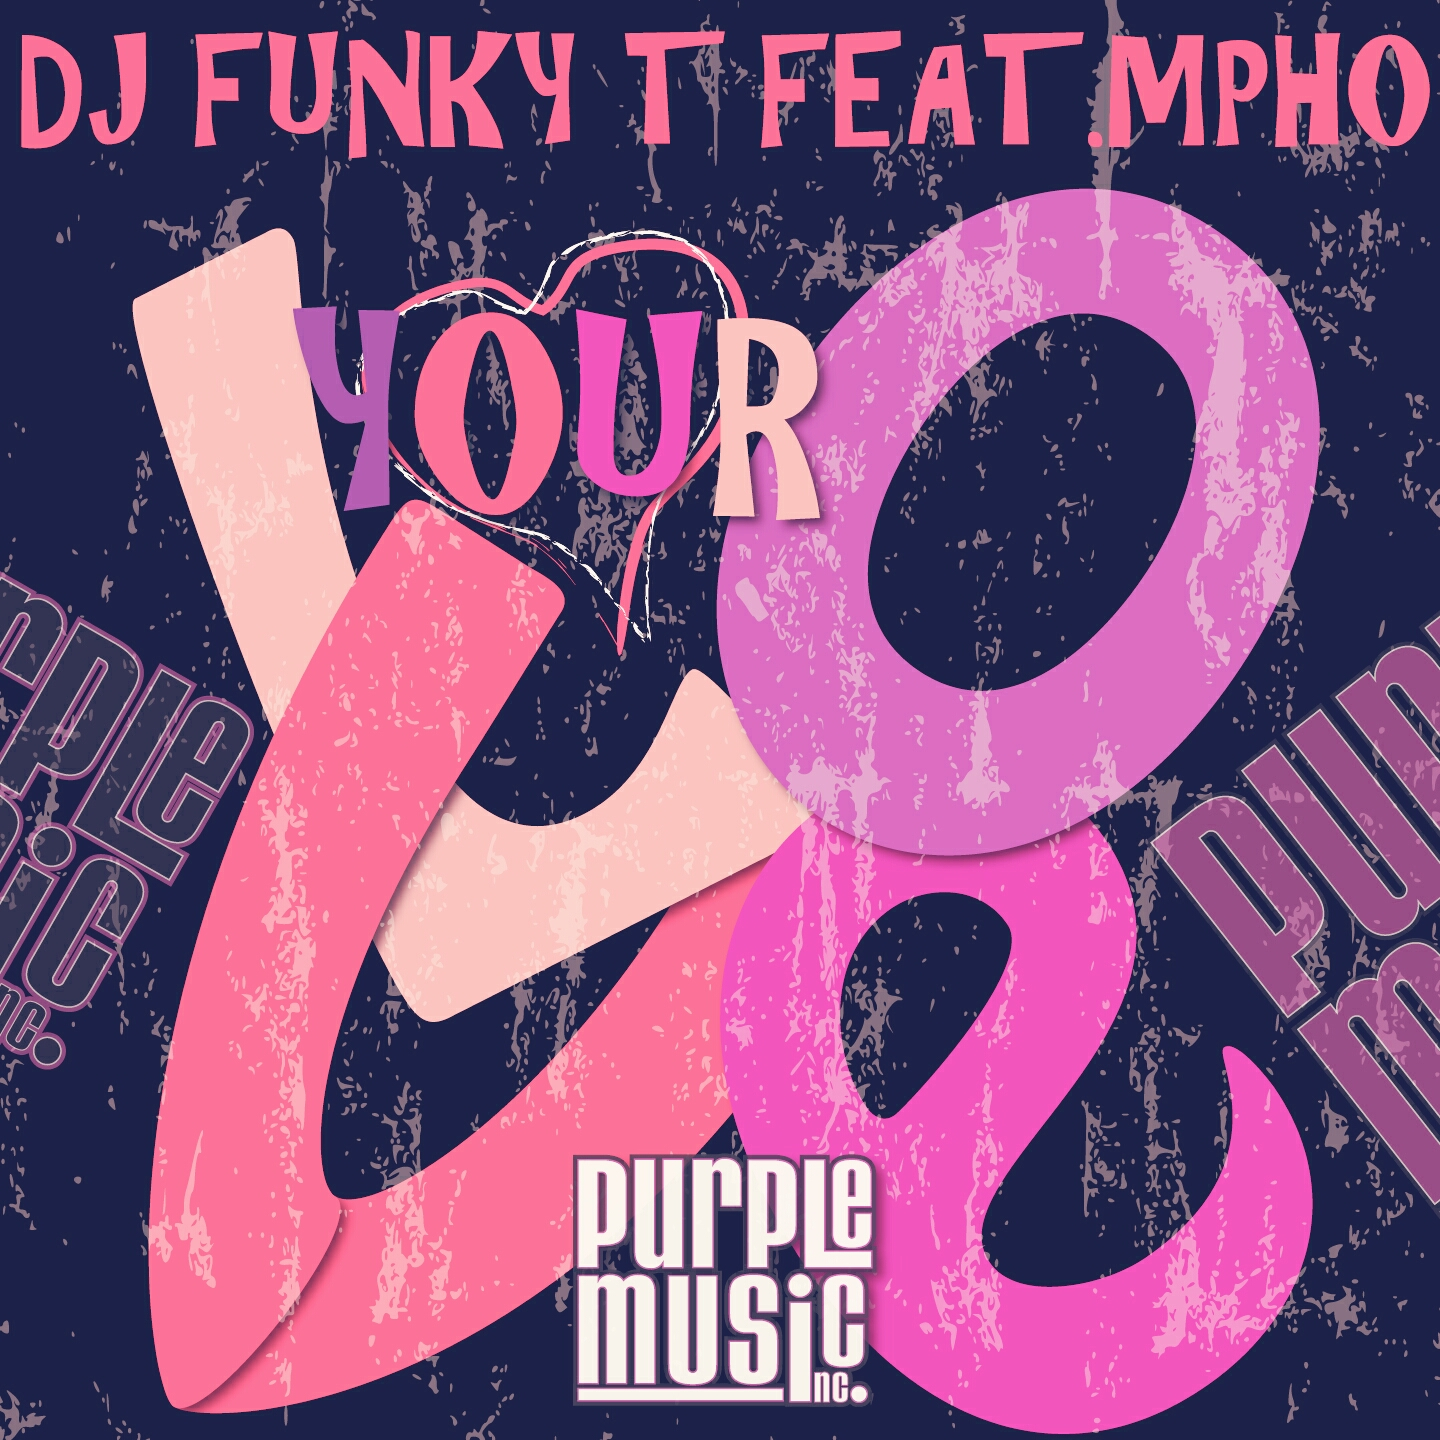 Dj Funky T feat Mpho - Your Love